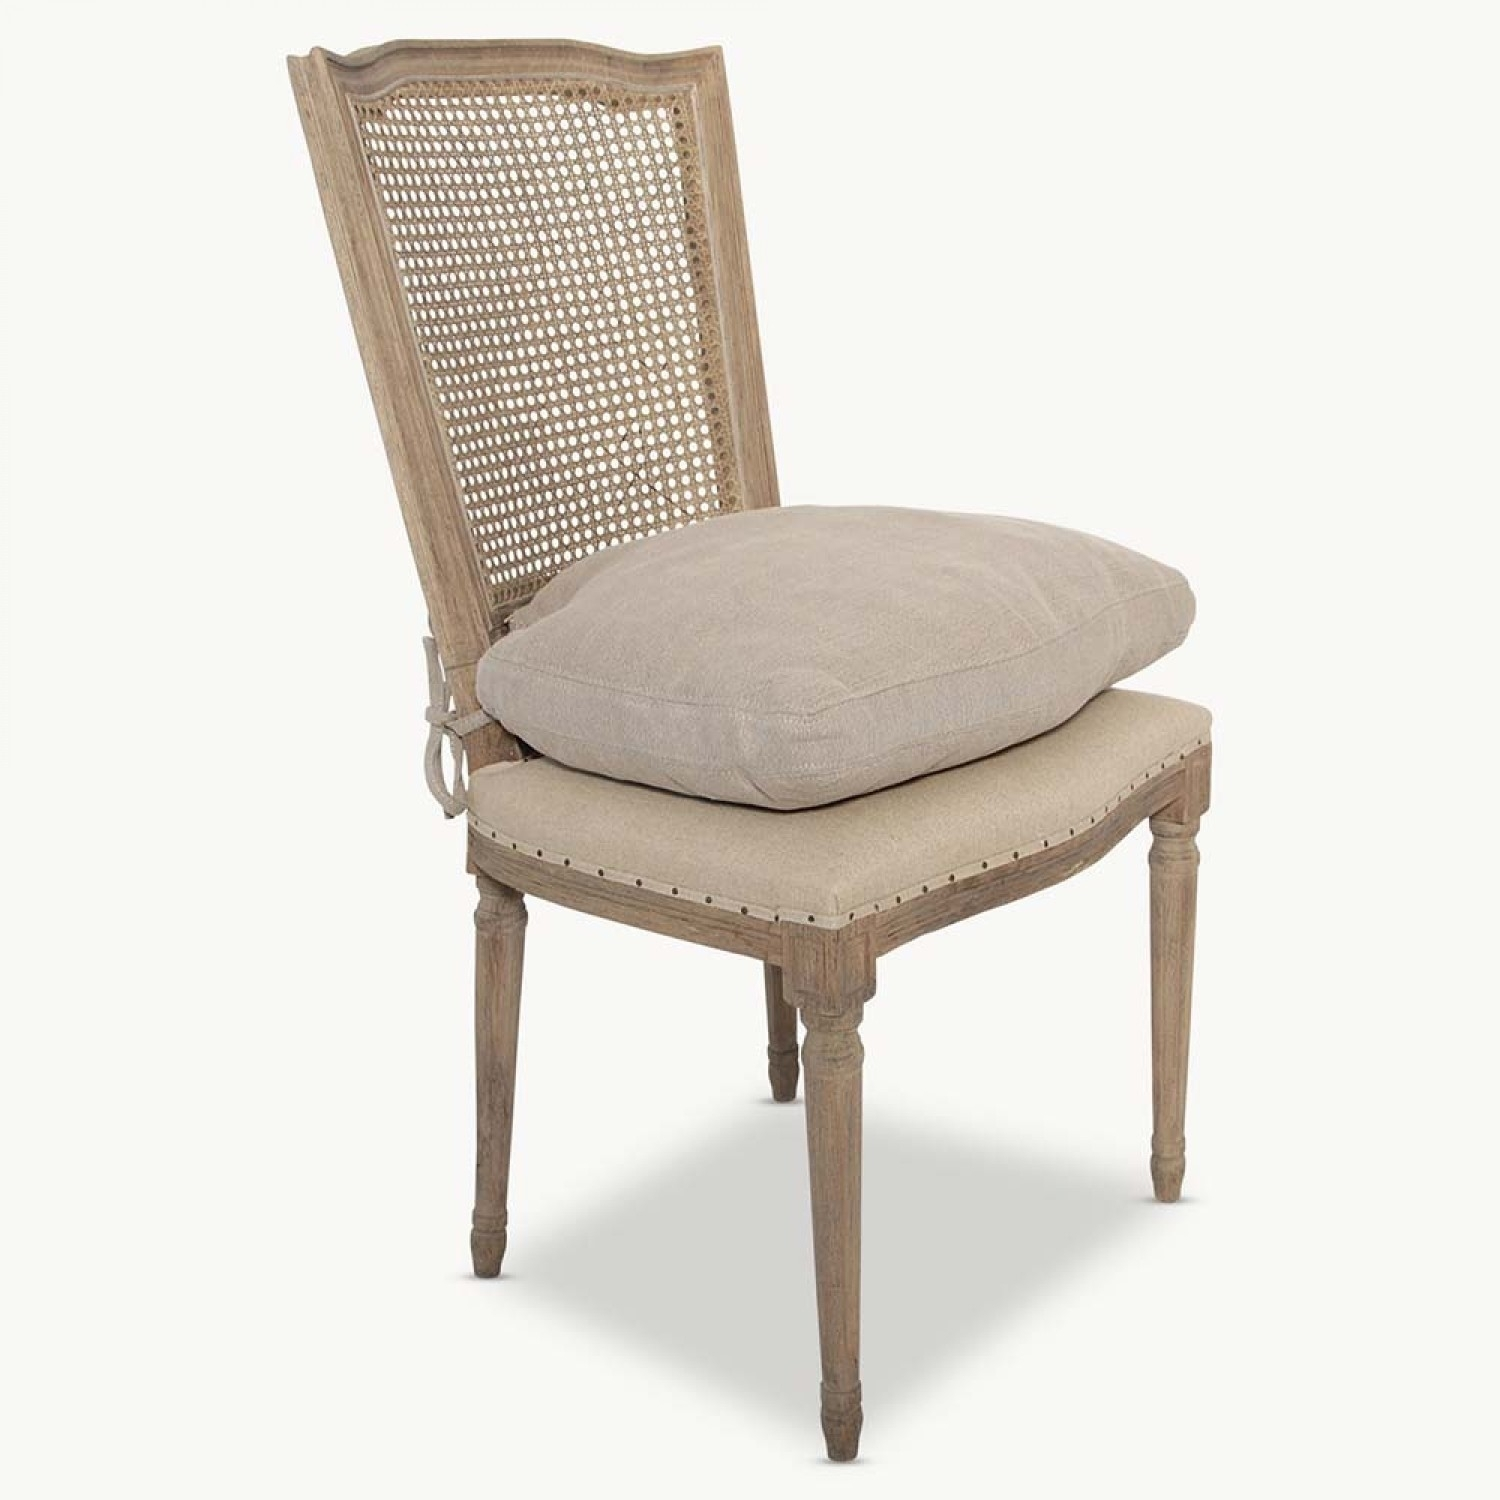 Sweetpea & Willow Throughout Most Recently Released Kent Dining Chairs (View 4 of 20)